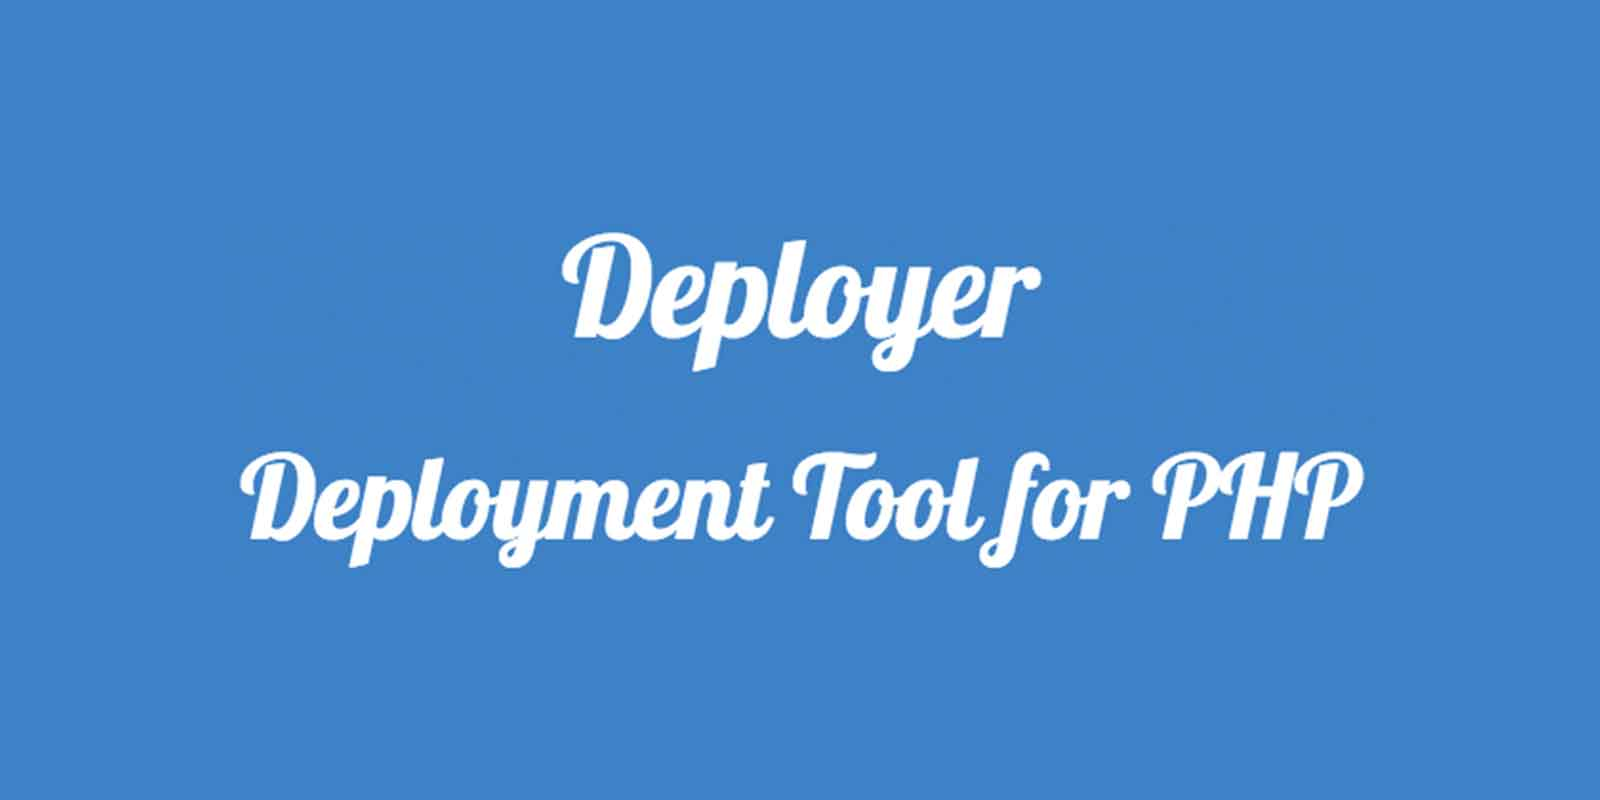 Deployer — Deployment Tool for PHP